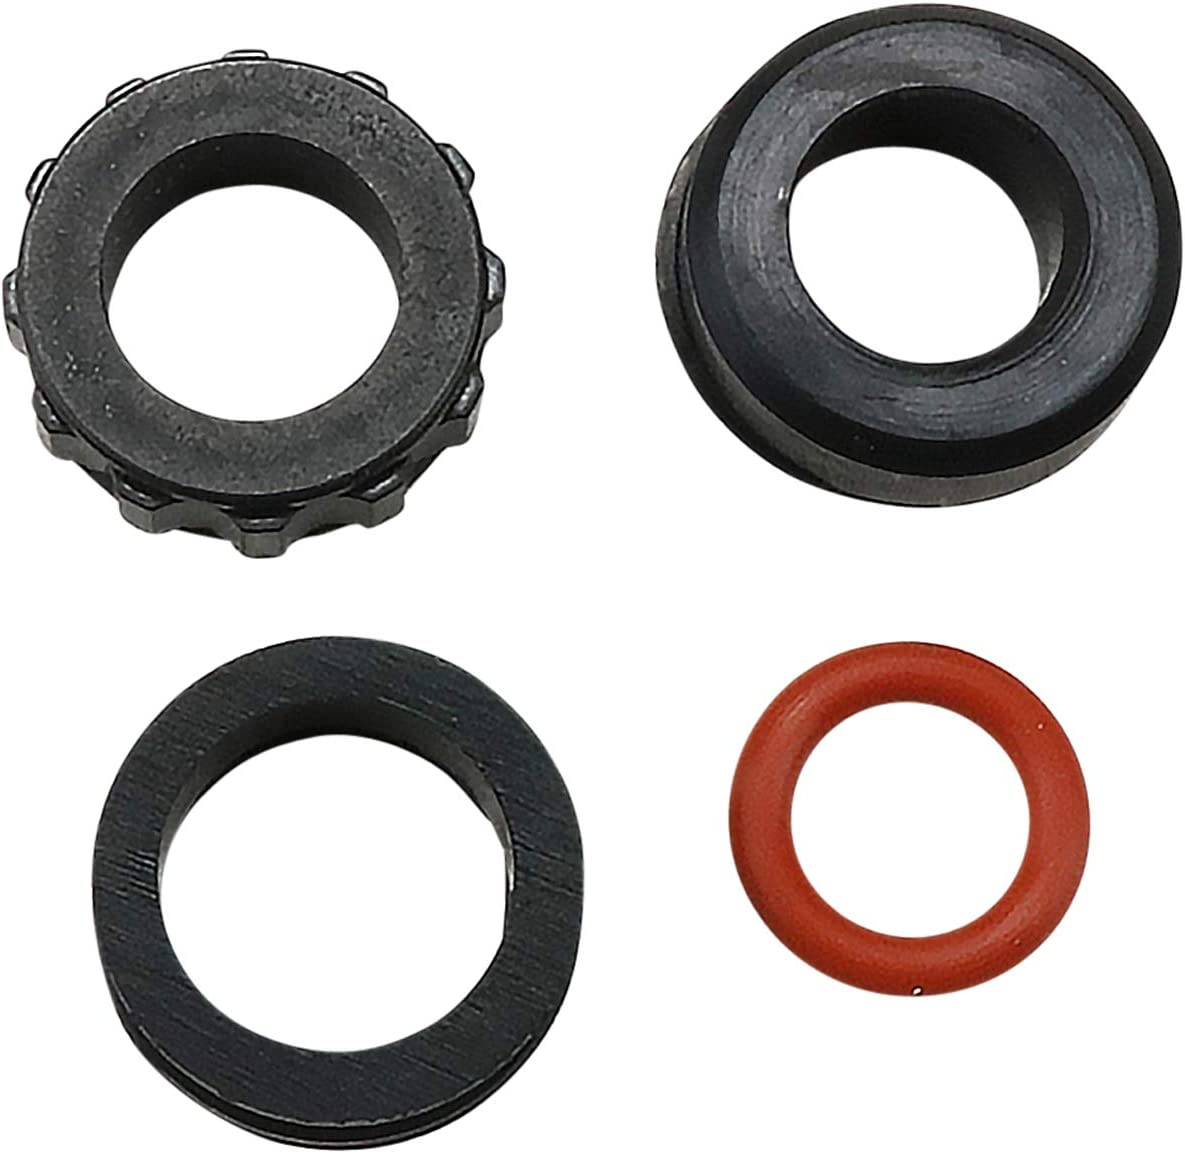 Beck Arnley OE Match 158-0898 Injector Seal Kit 12 Month 12,000 Mile Warranty